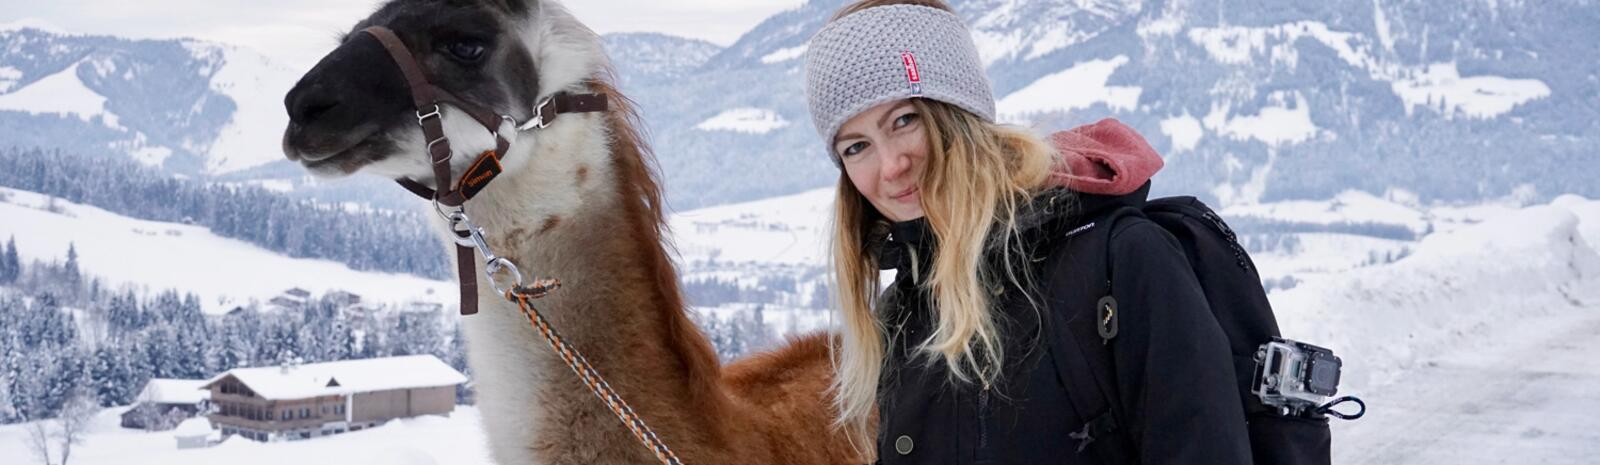 Sandra and the lamaSandra and the llama | © loopingmagazin